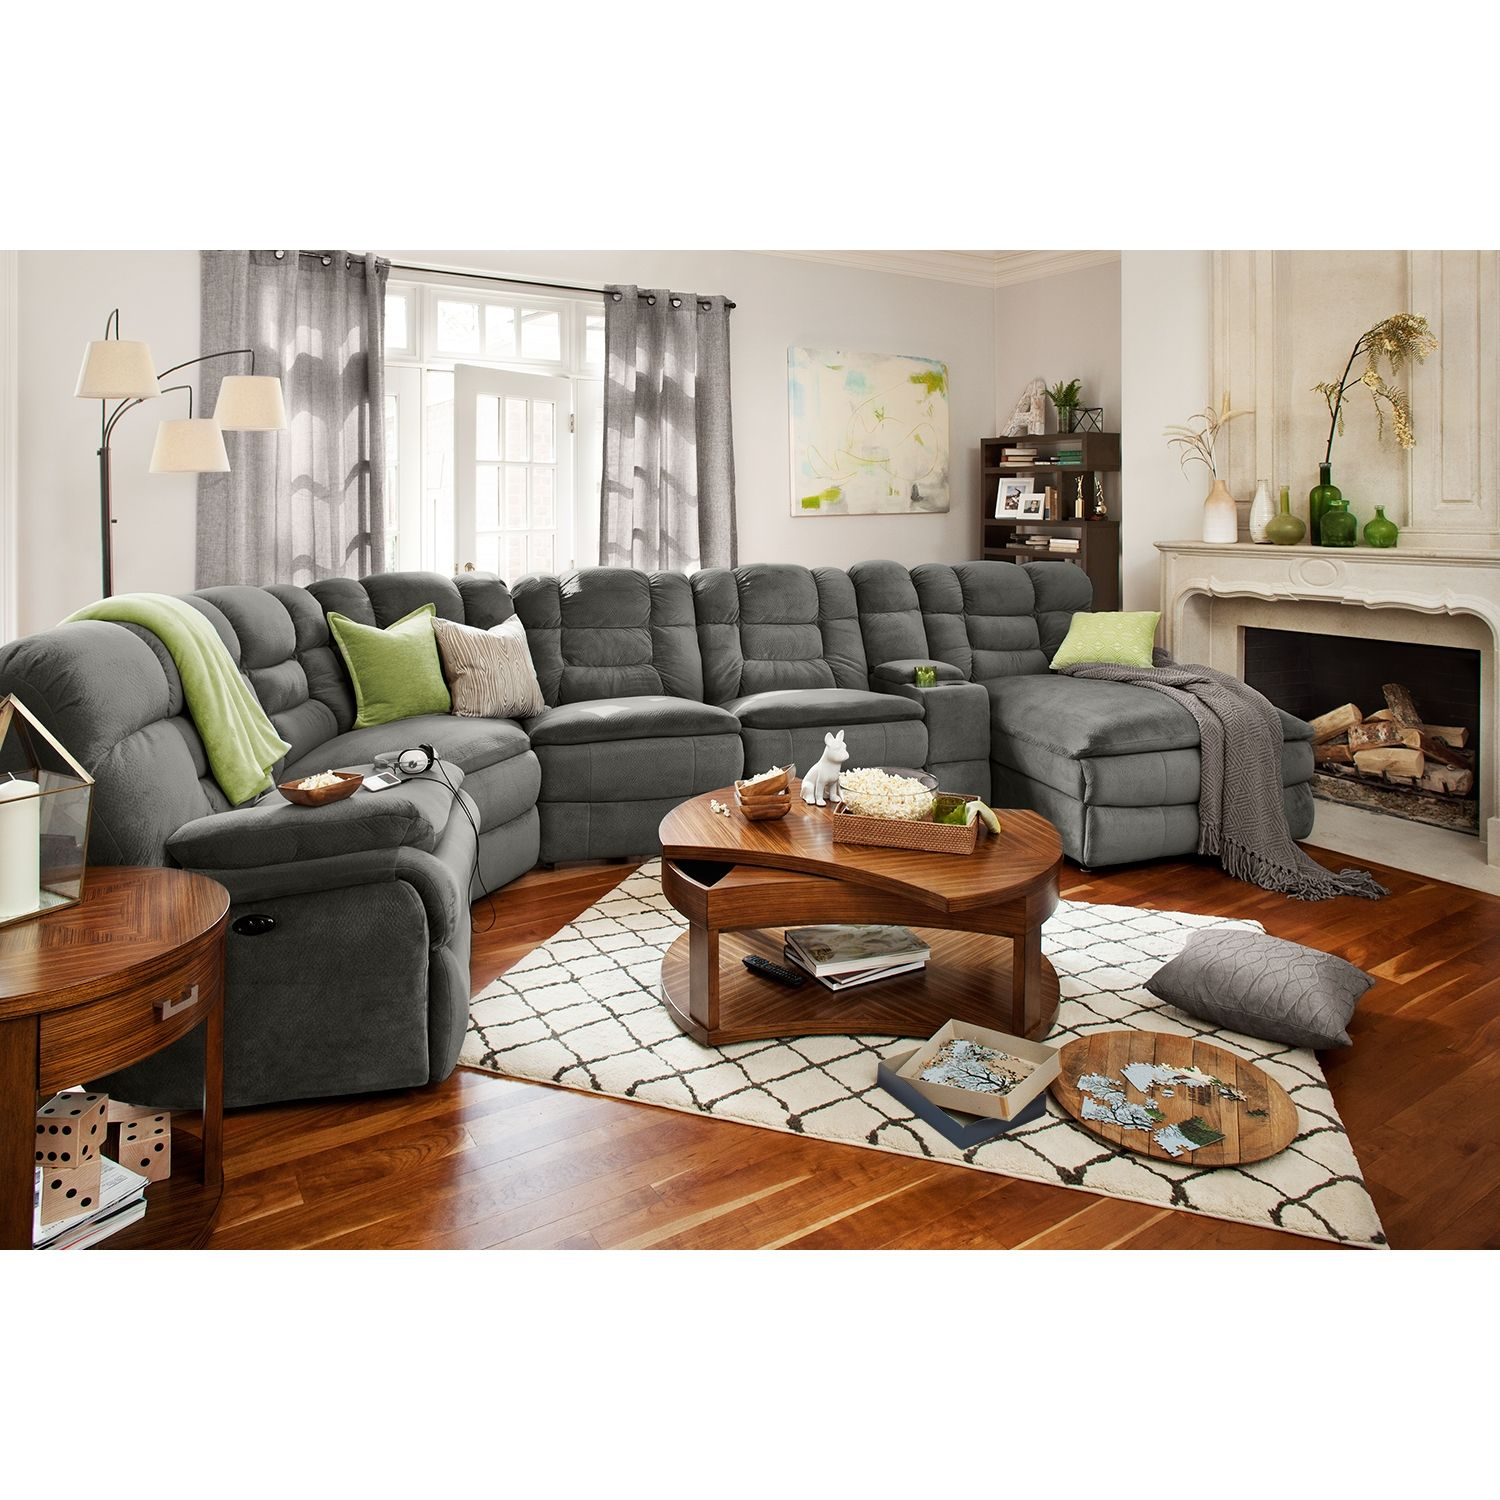 Living room furniture cordoba 2 pc sectional - It S Called The Big Softie For A Reason So Soft So Durable Big Softie Reclining Sectionalsectional Sofasdiapersliving Room